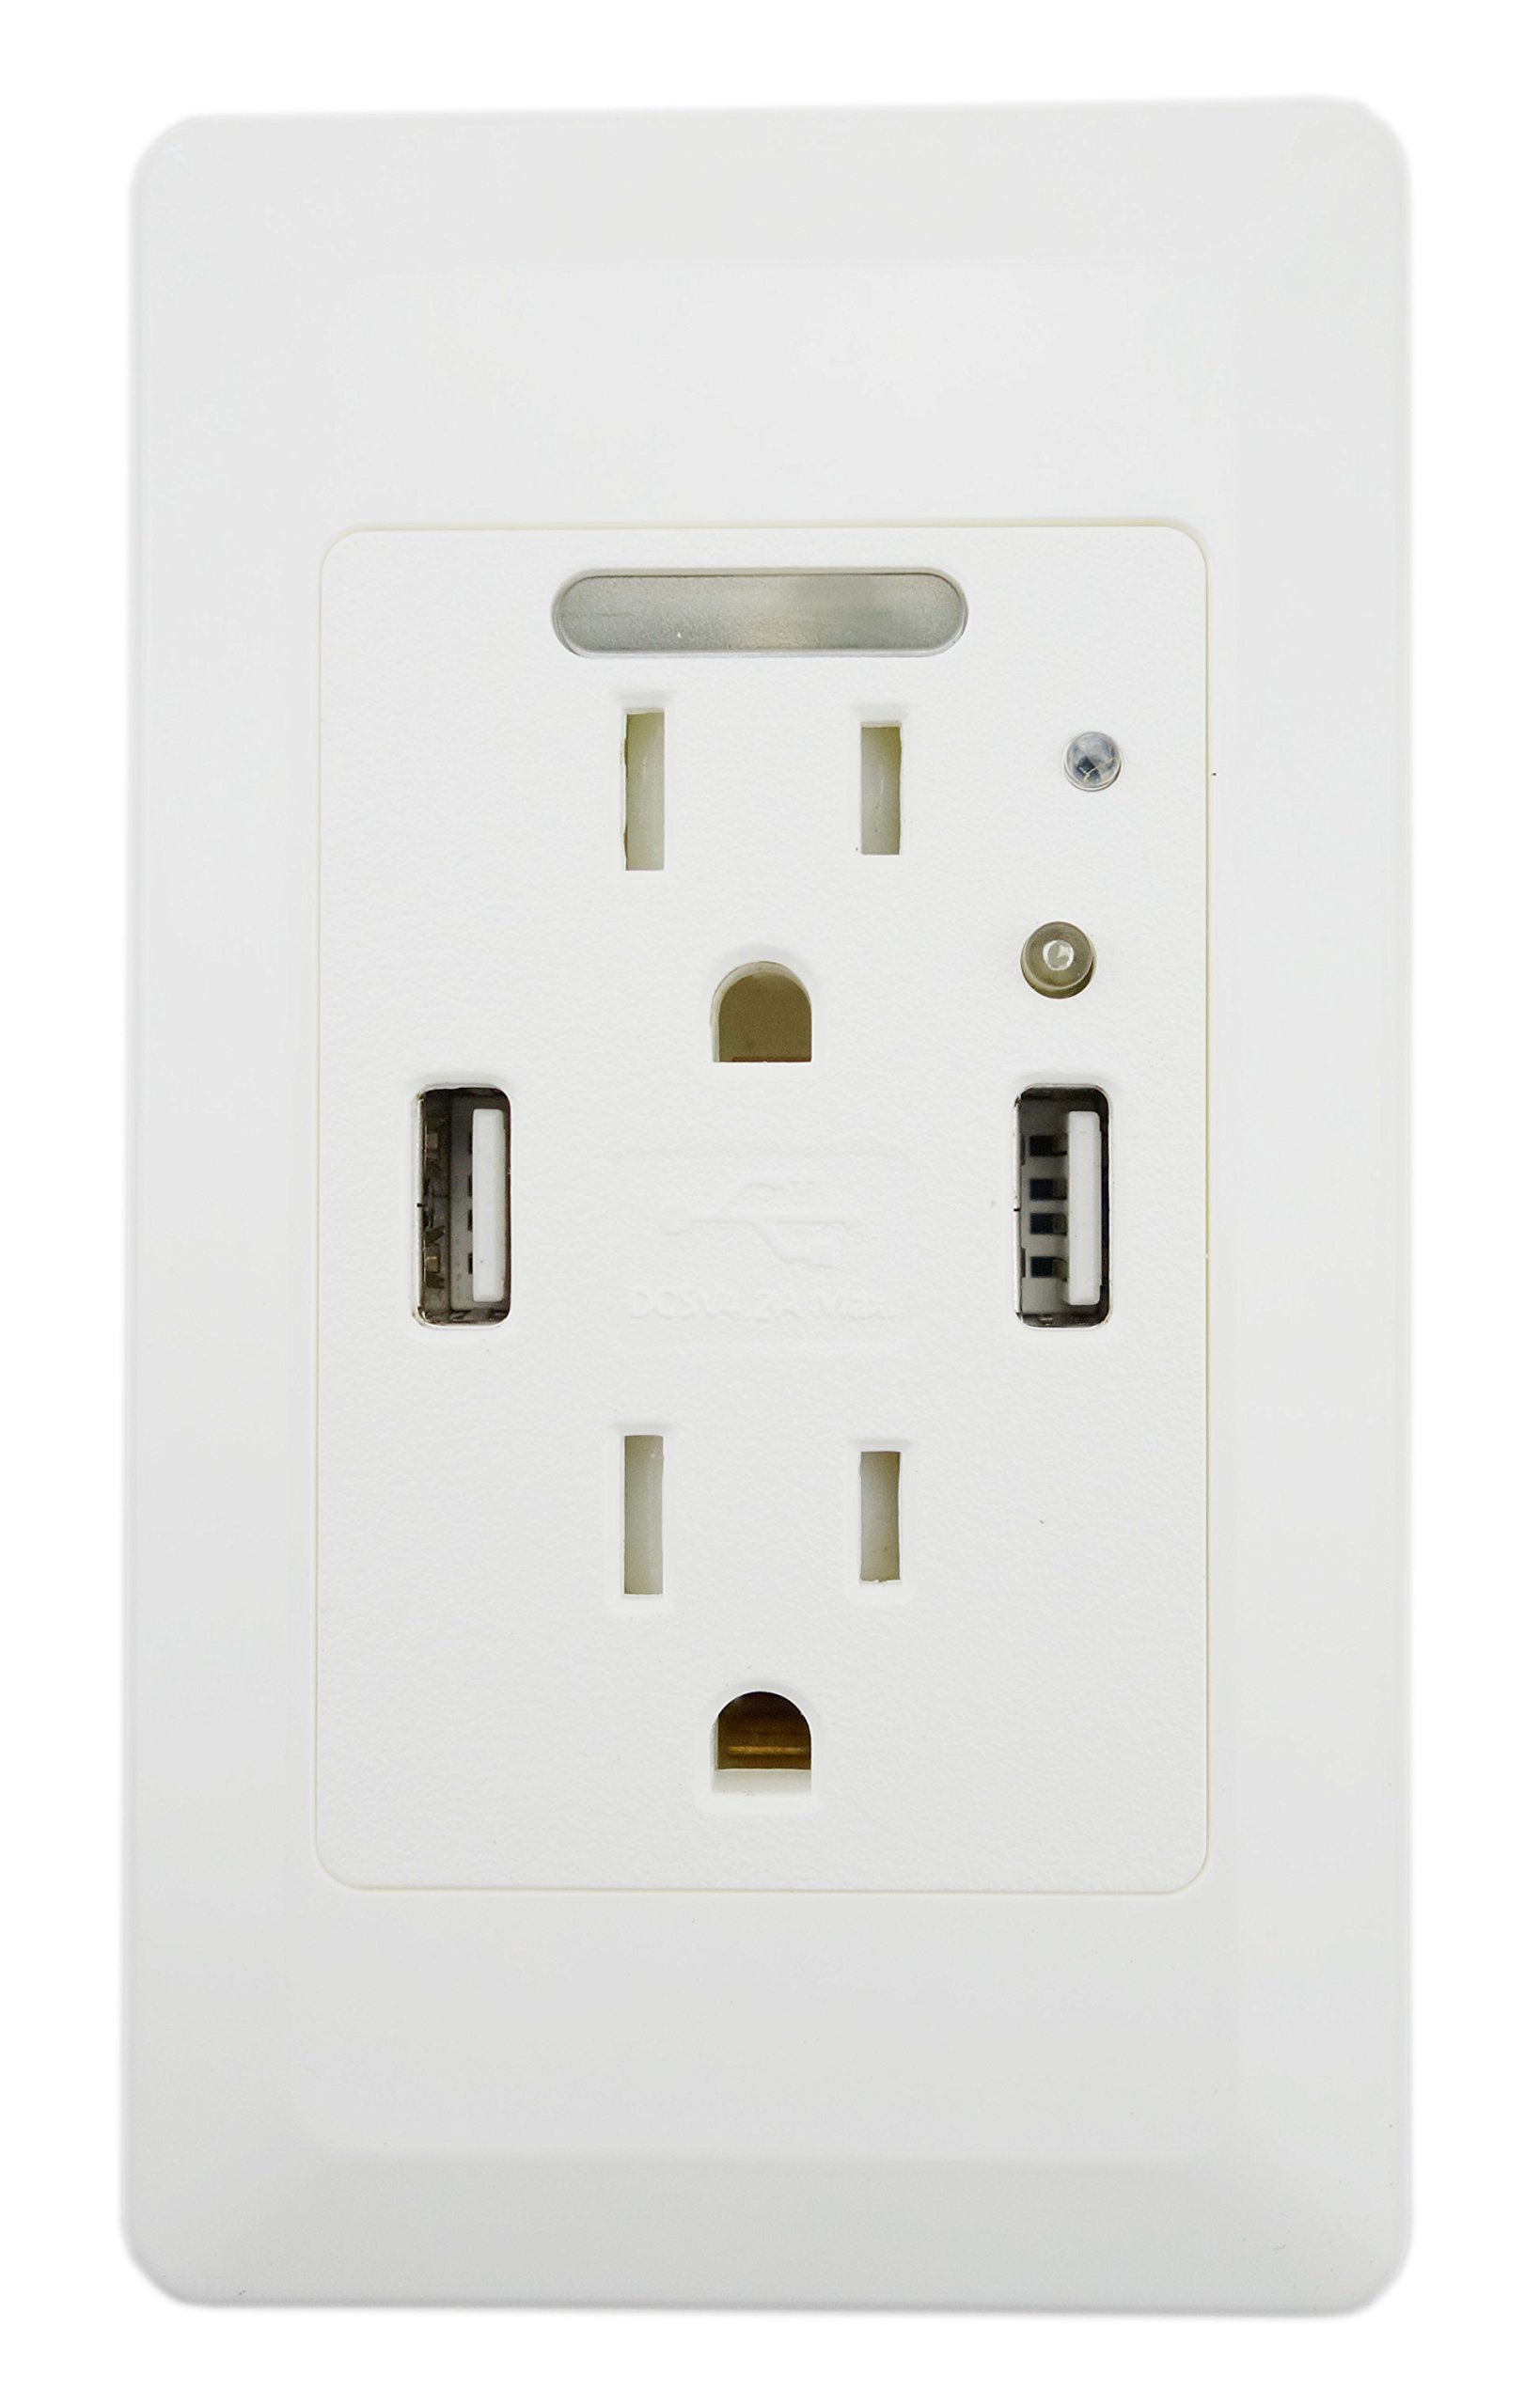 YOPI 4.2A High Speed Dual USB Charger , 15A Tamper Resistant Wall Receptacle 2 Outlets Band Panel Night Light ,White ,ETL Listed